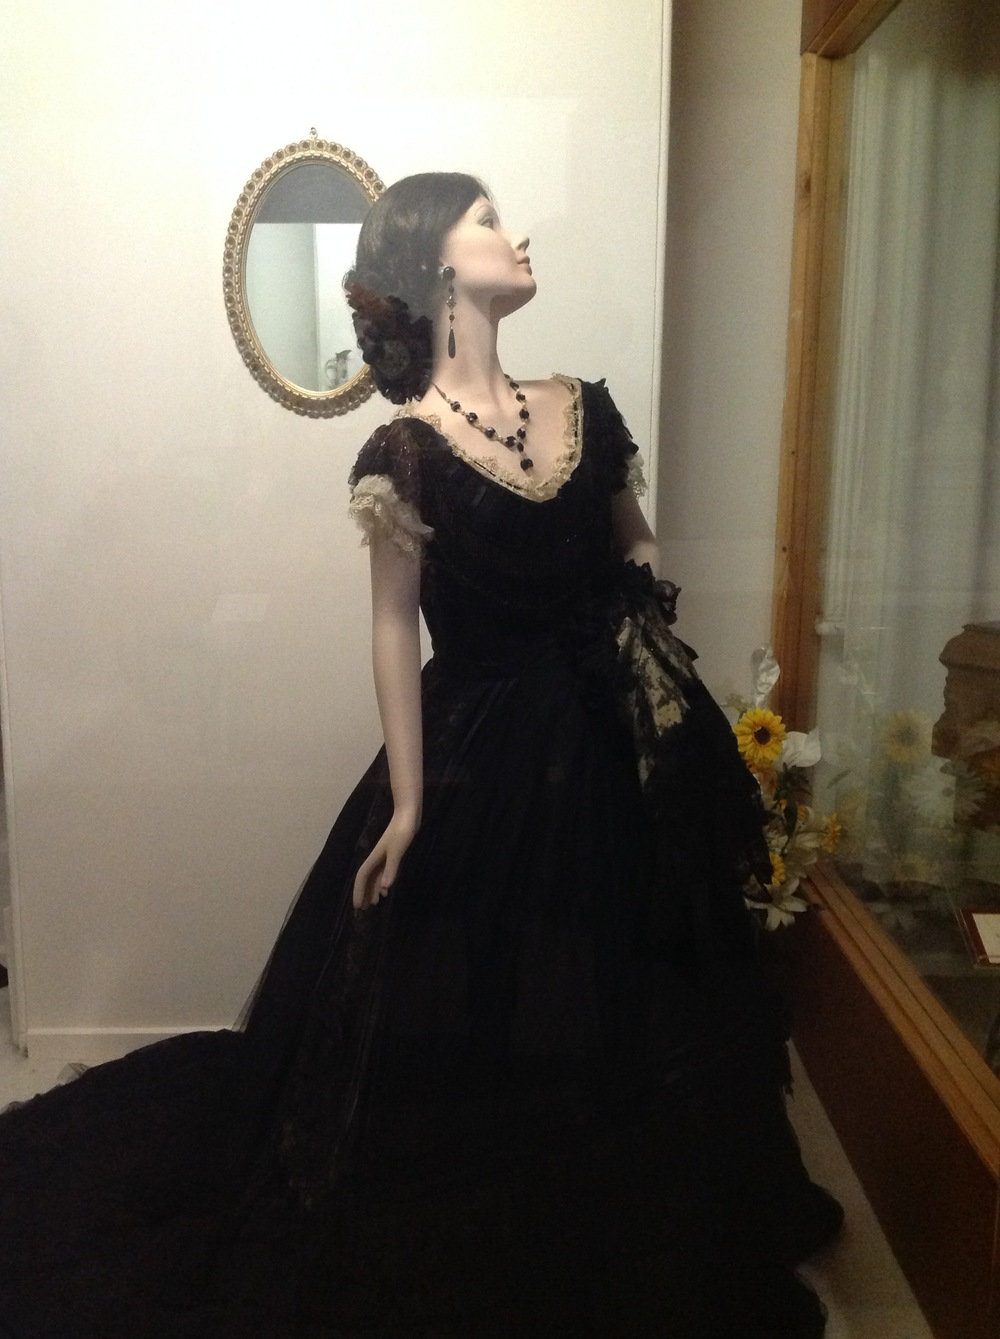 One of the beautiful mannequins at the Benella Costume Museum